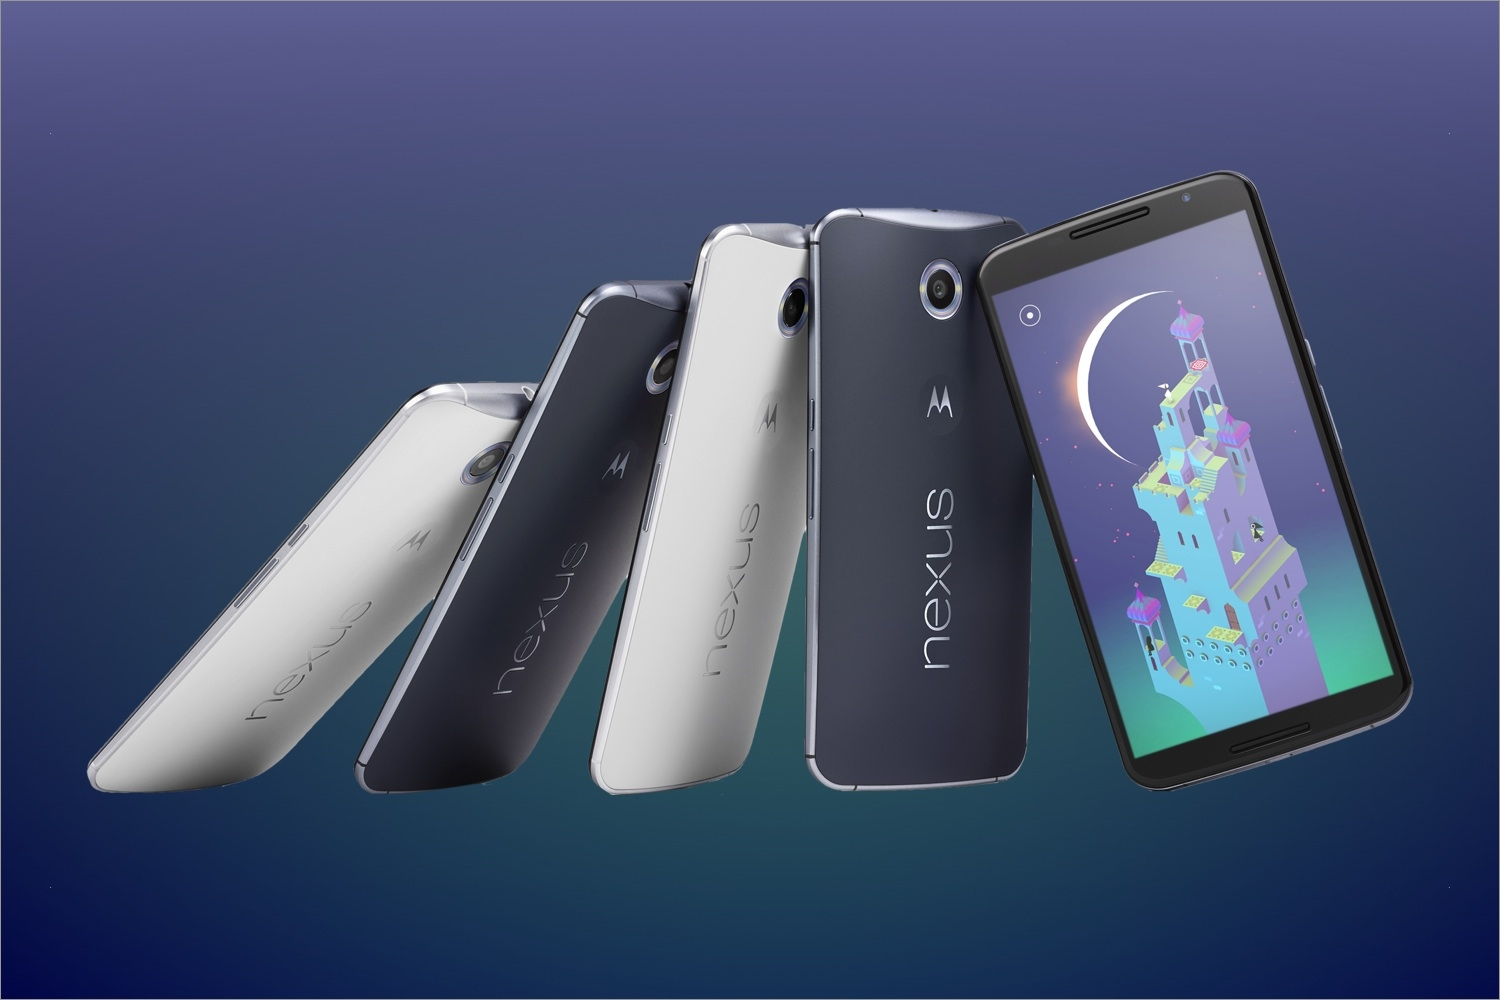 Google's Giant Smartphone Is Out Next Week!